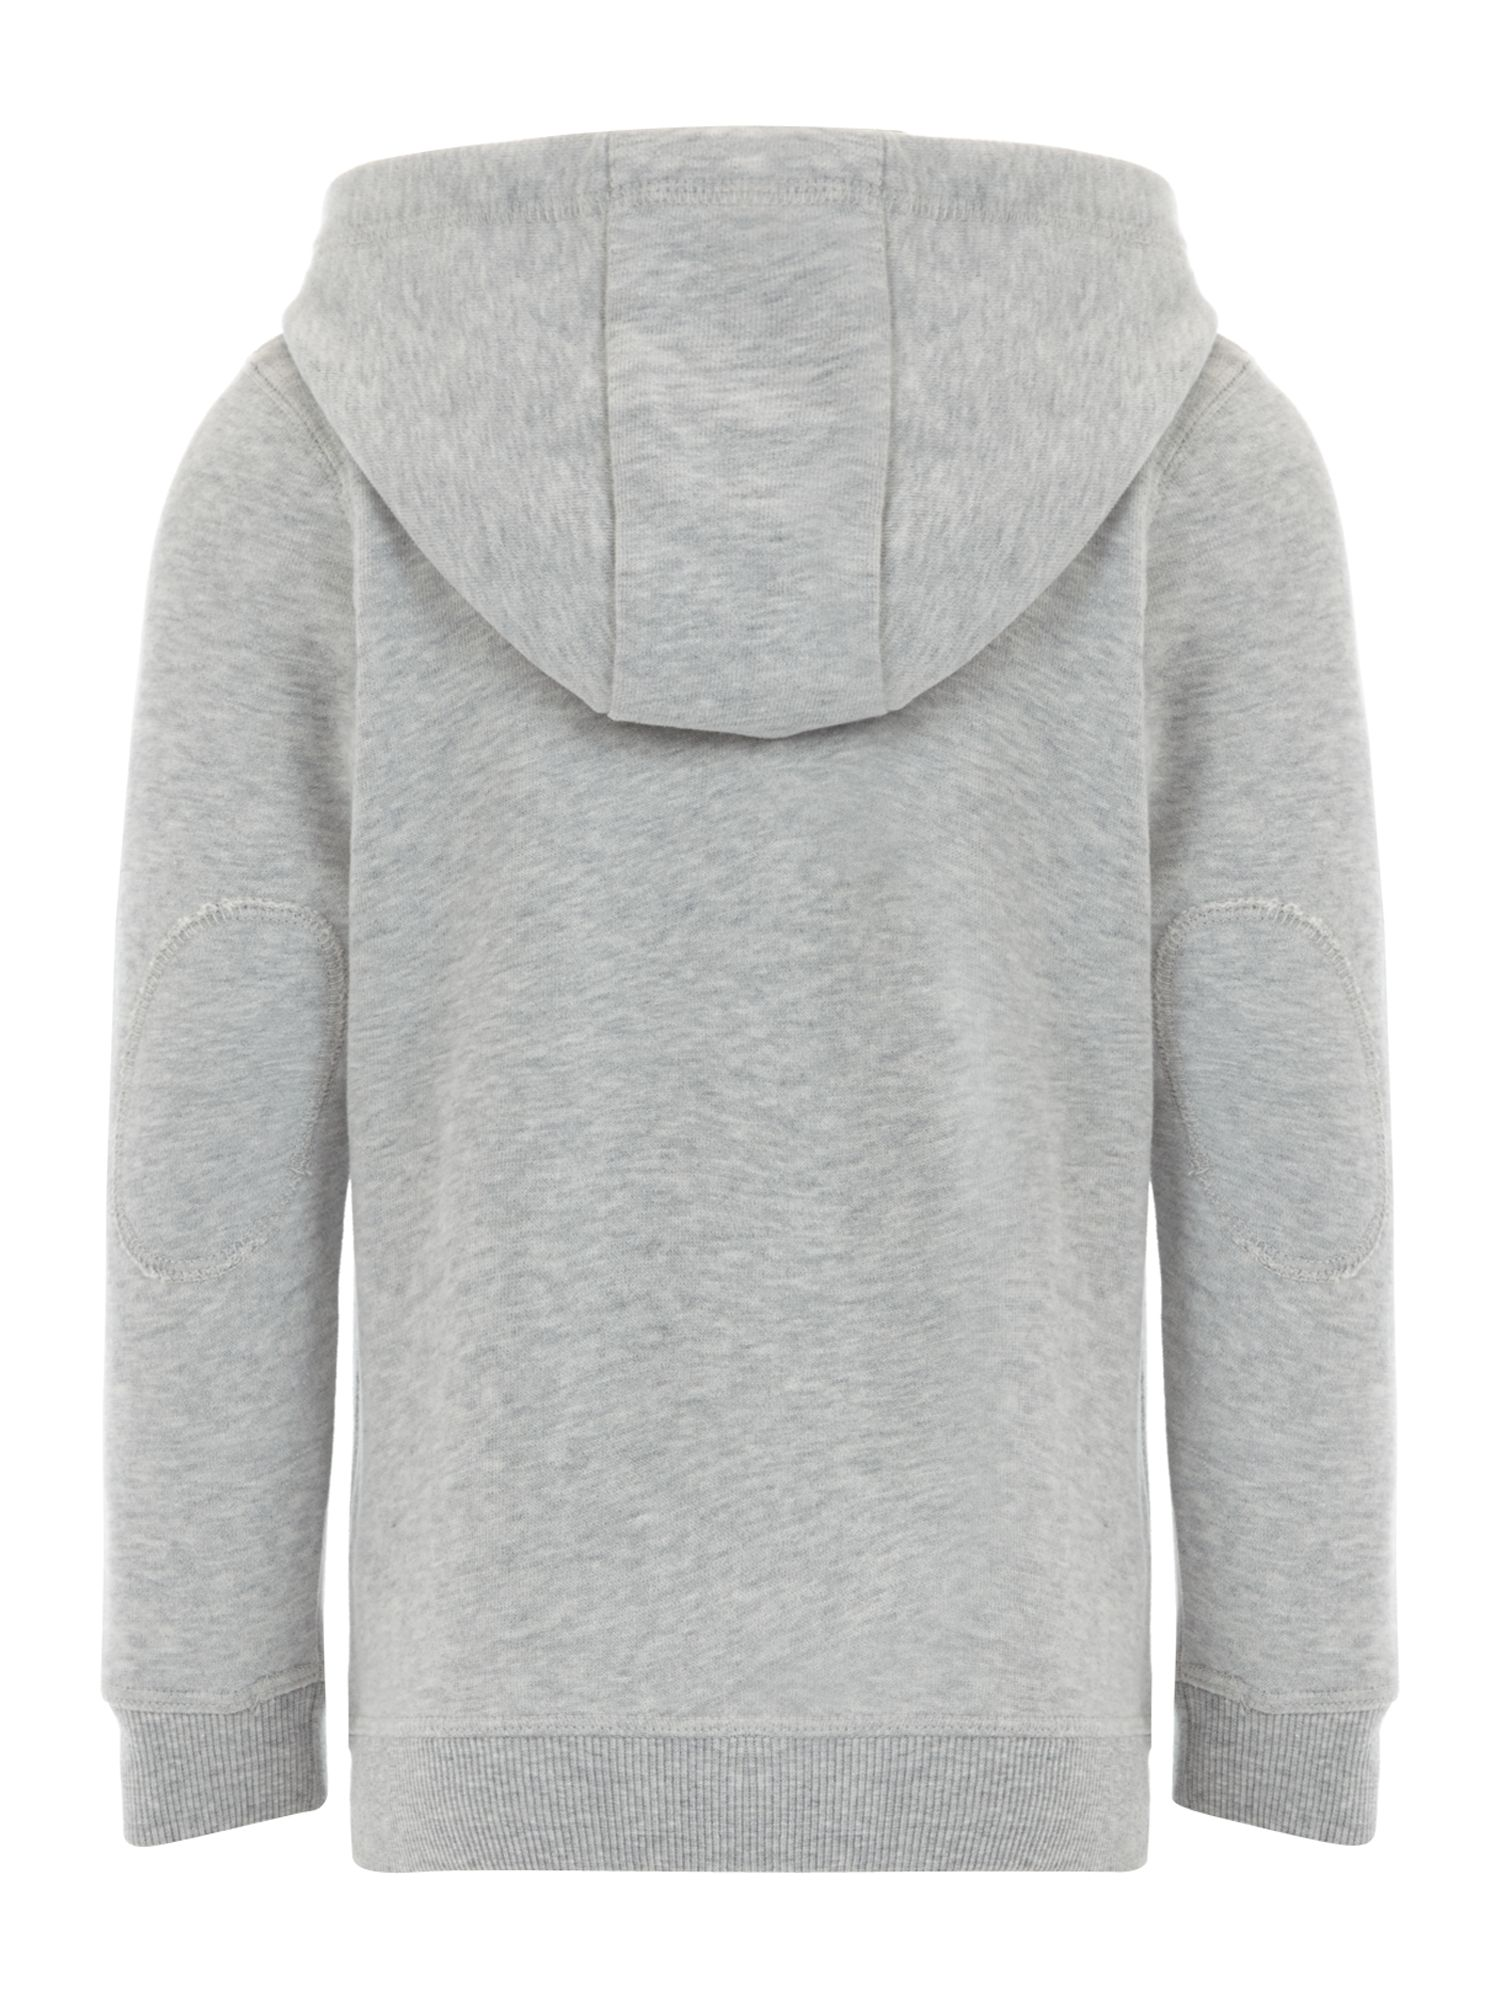 Boy`s fleece hooded top